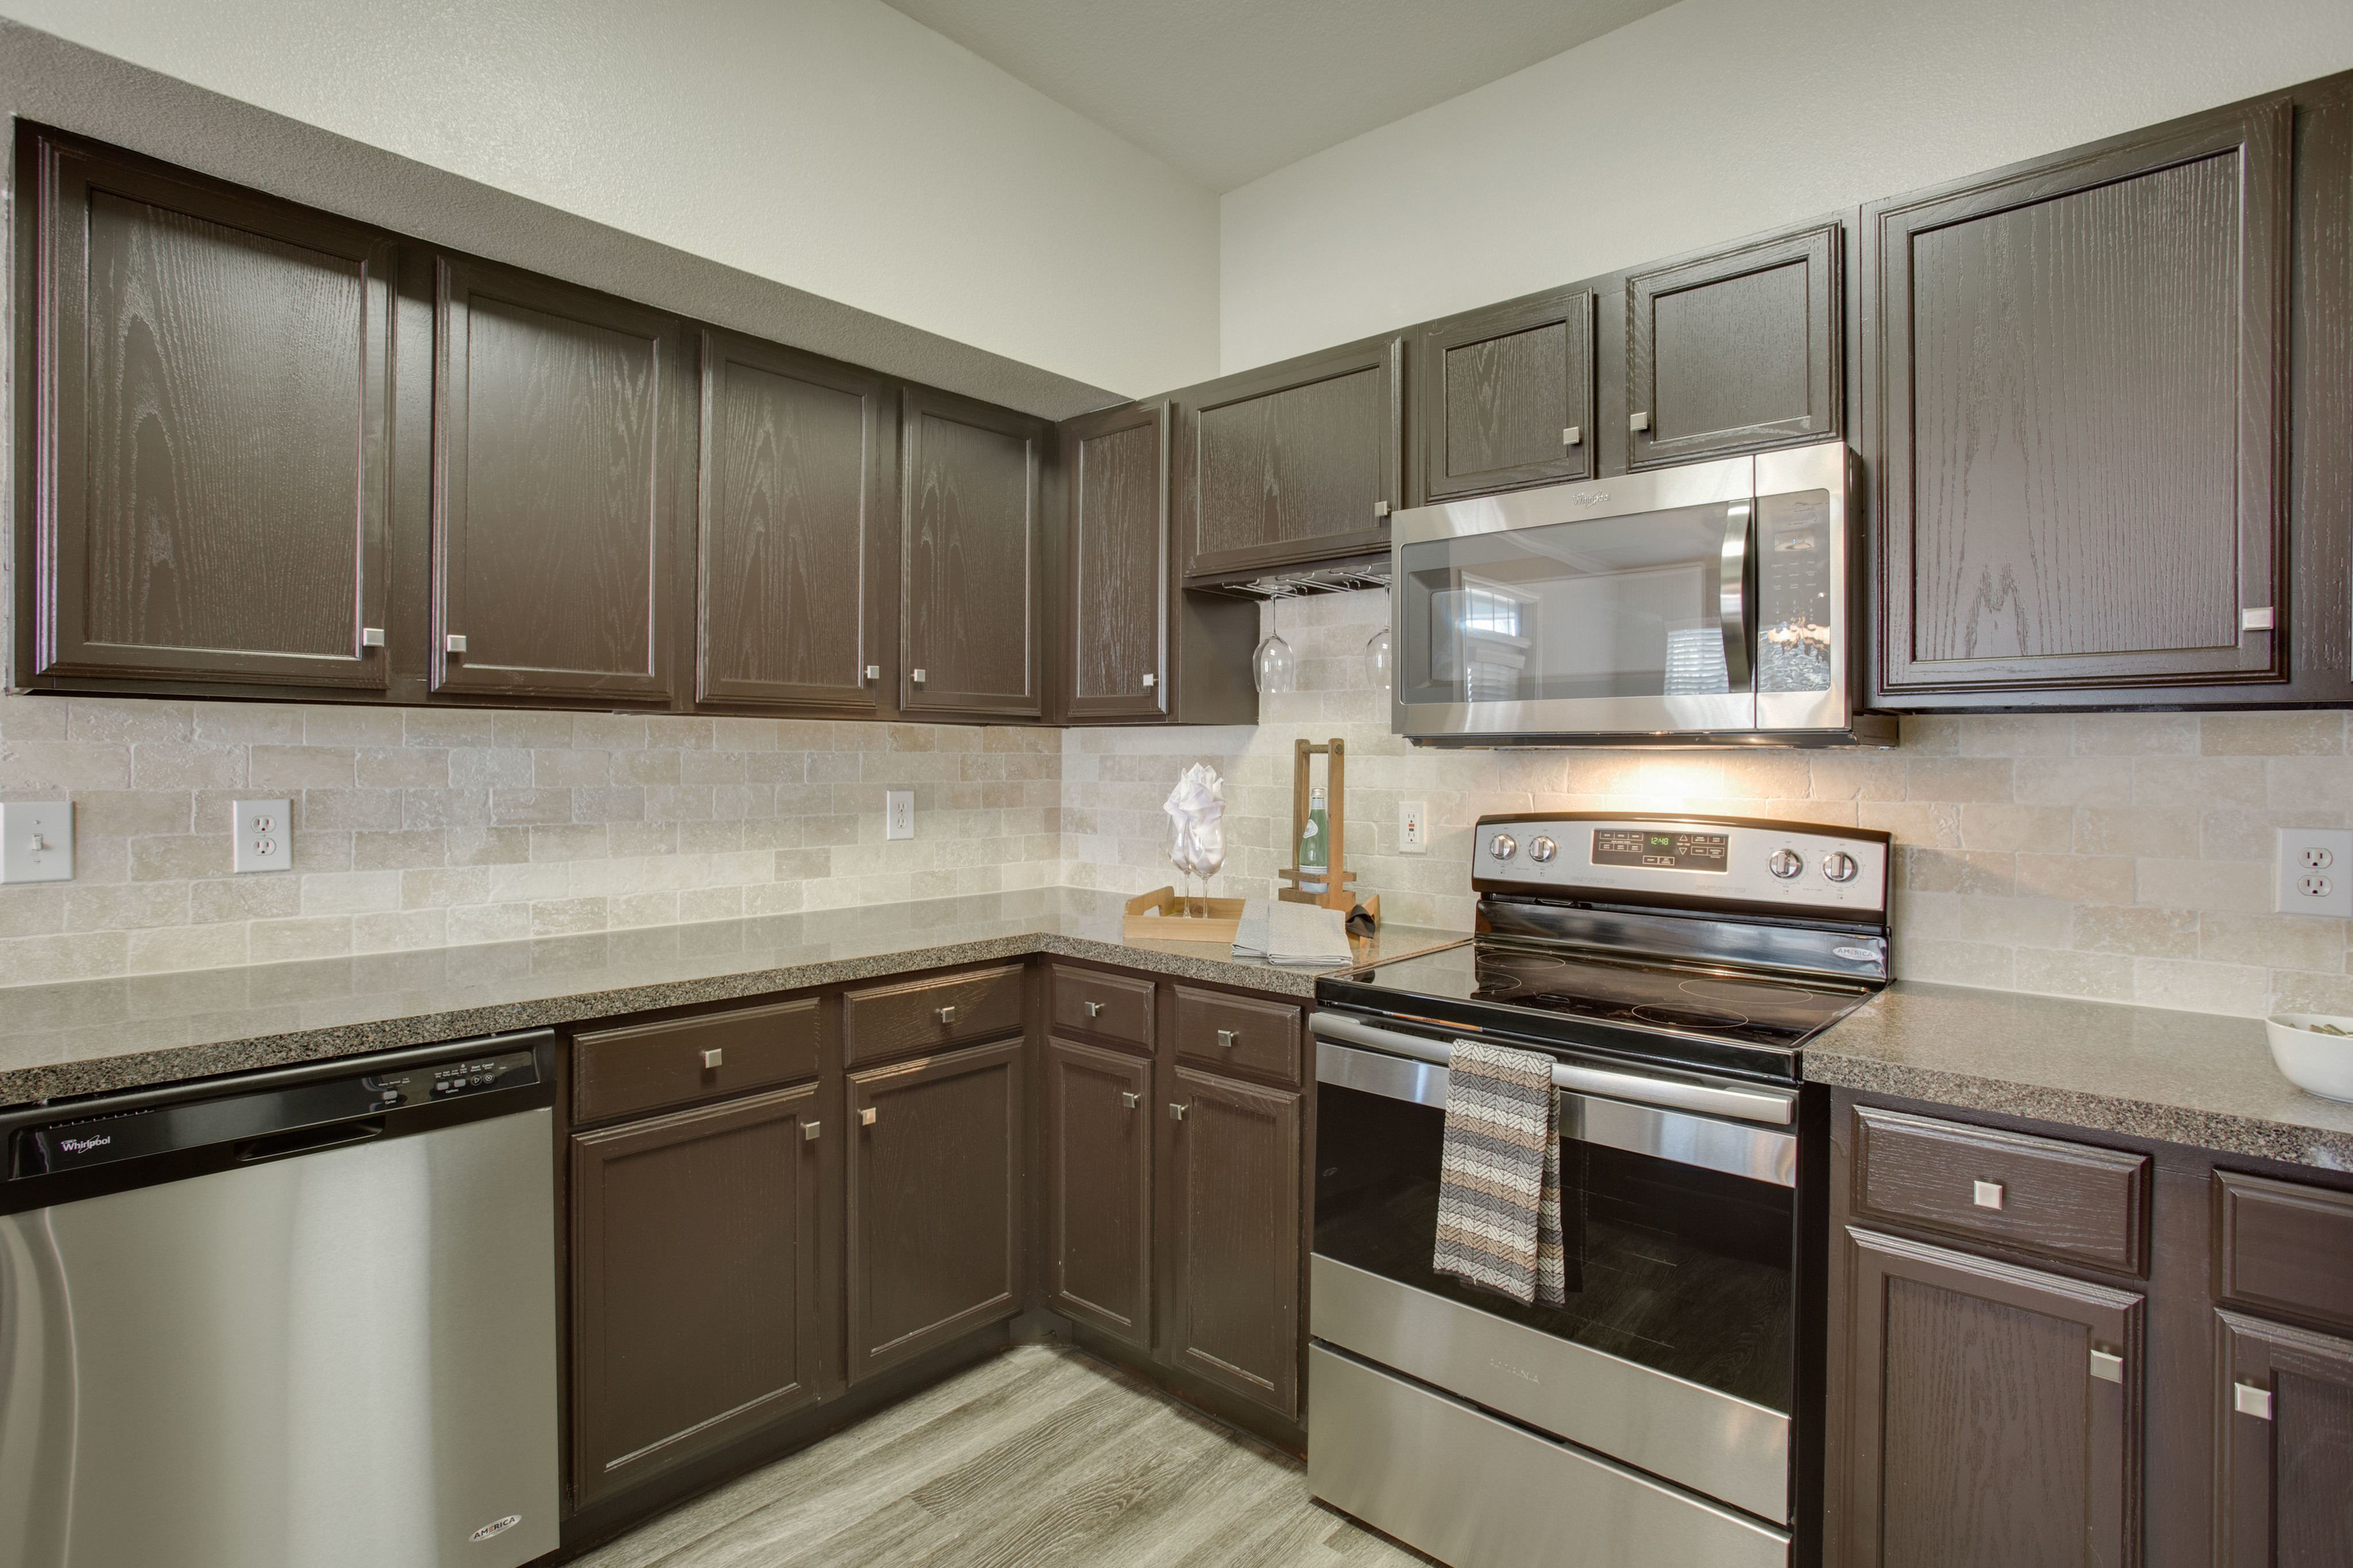 View of Kitchen with Plank-Wood Flooring and Stainless Steel Appliances and Raveneaux Apartments